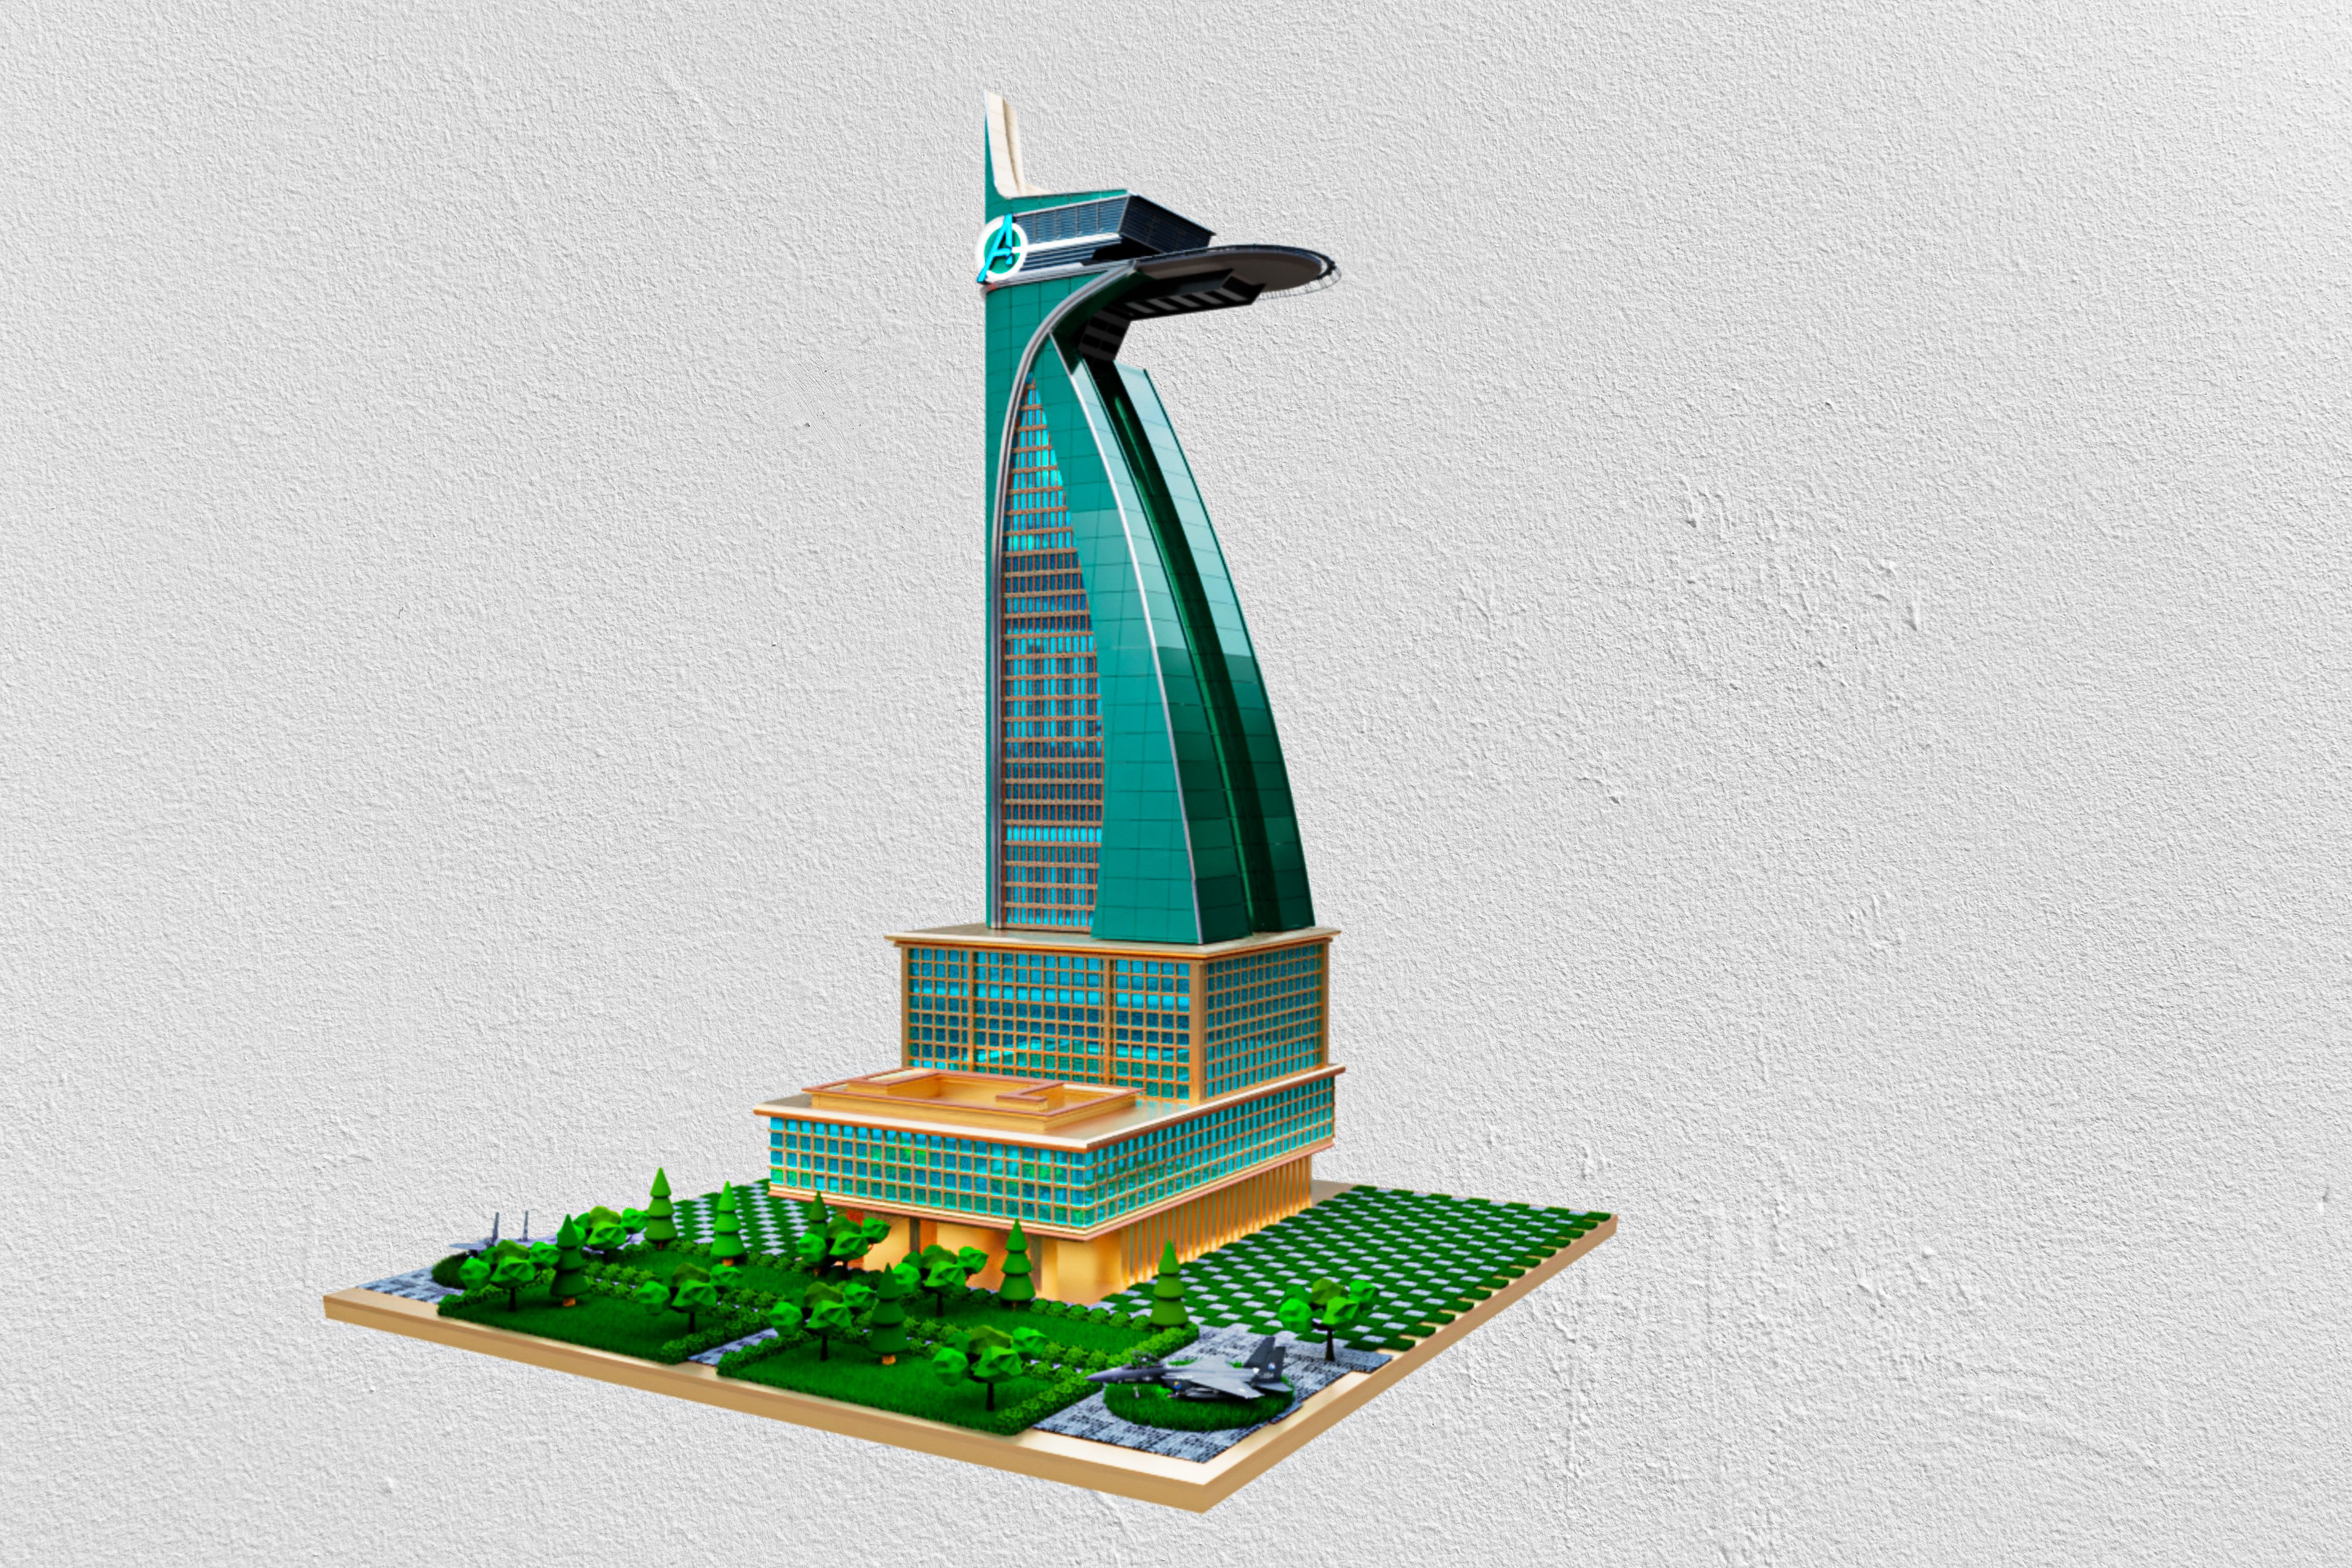 Avengers tower fully detailed with detailed landing plate